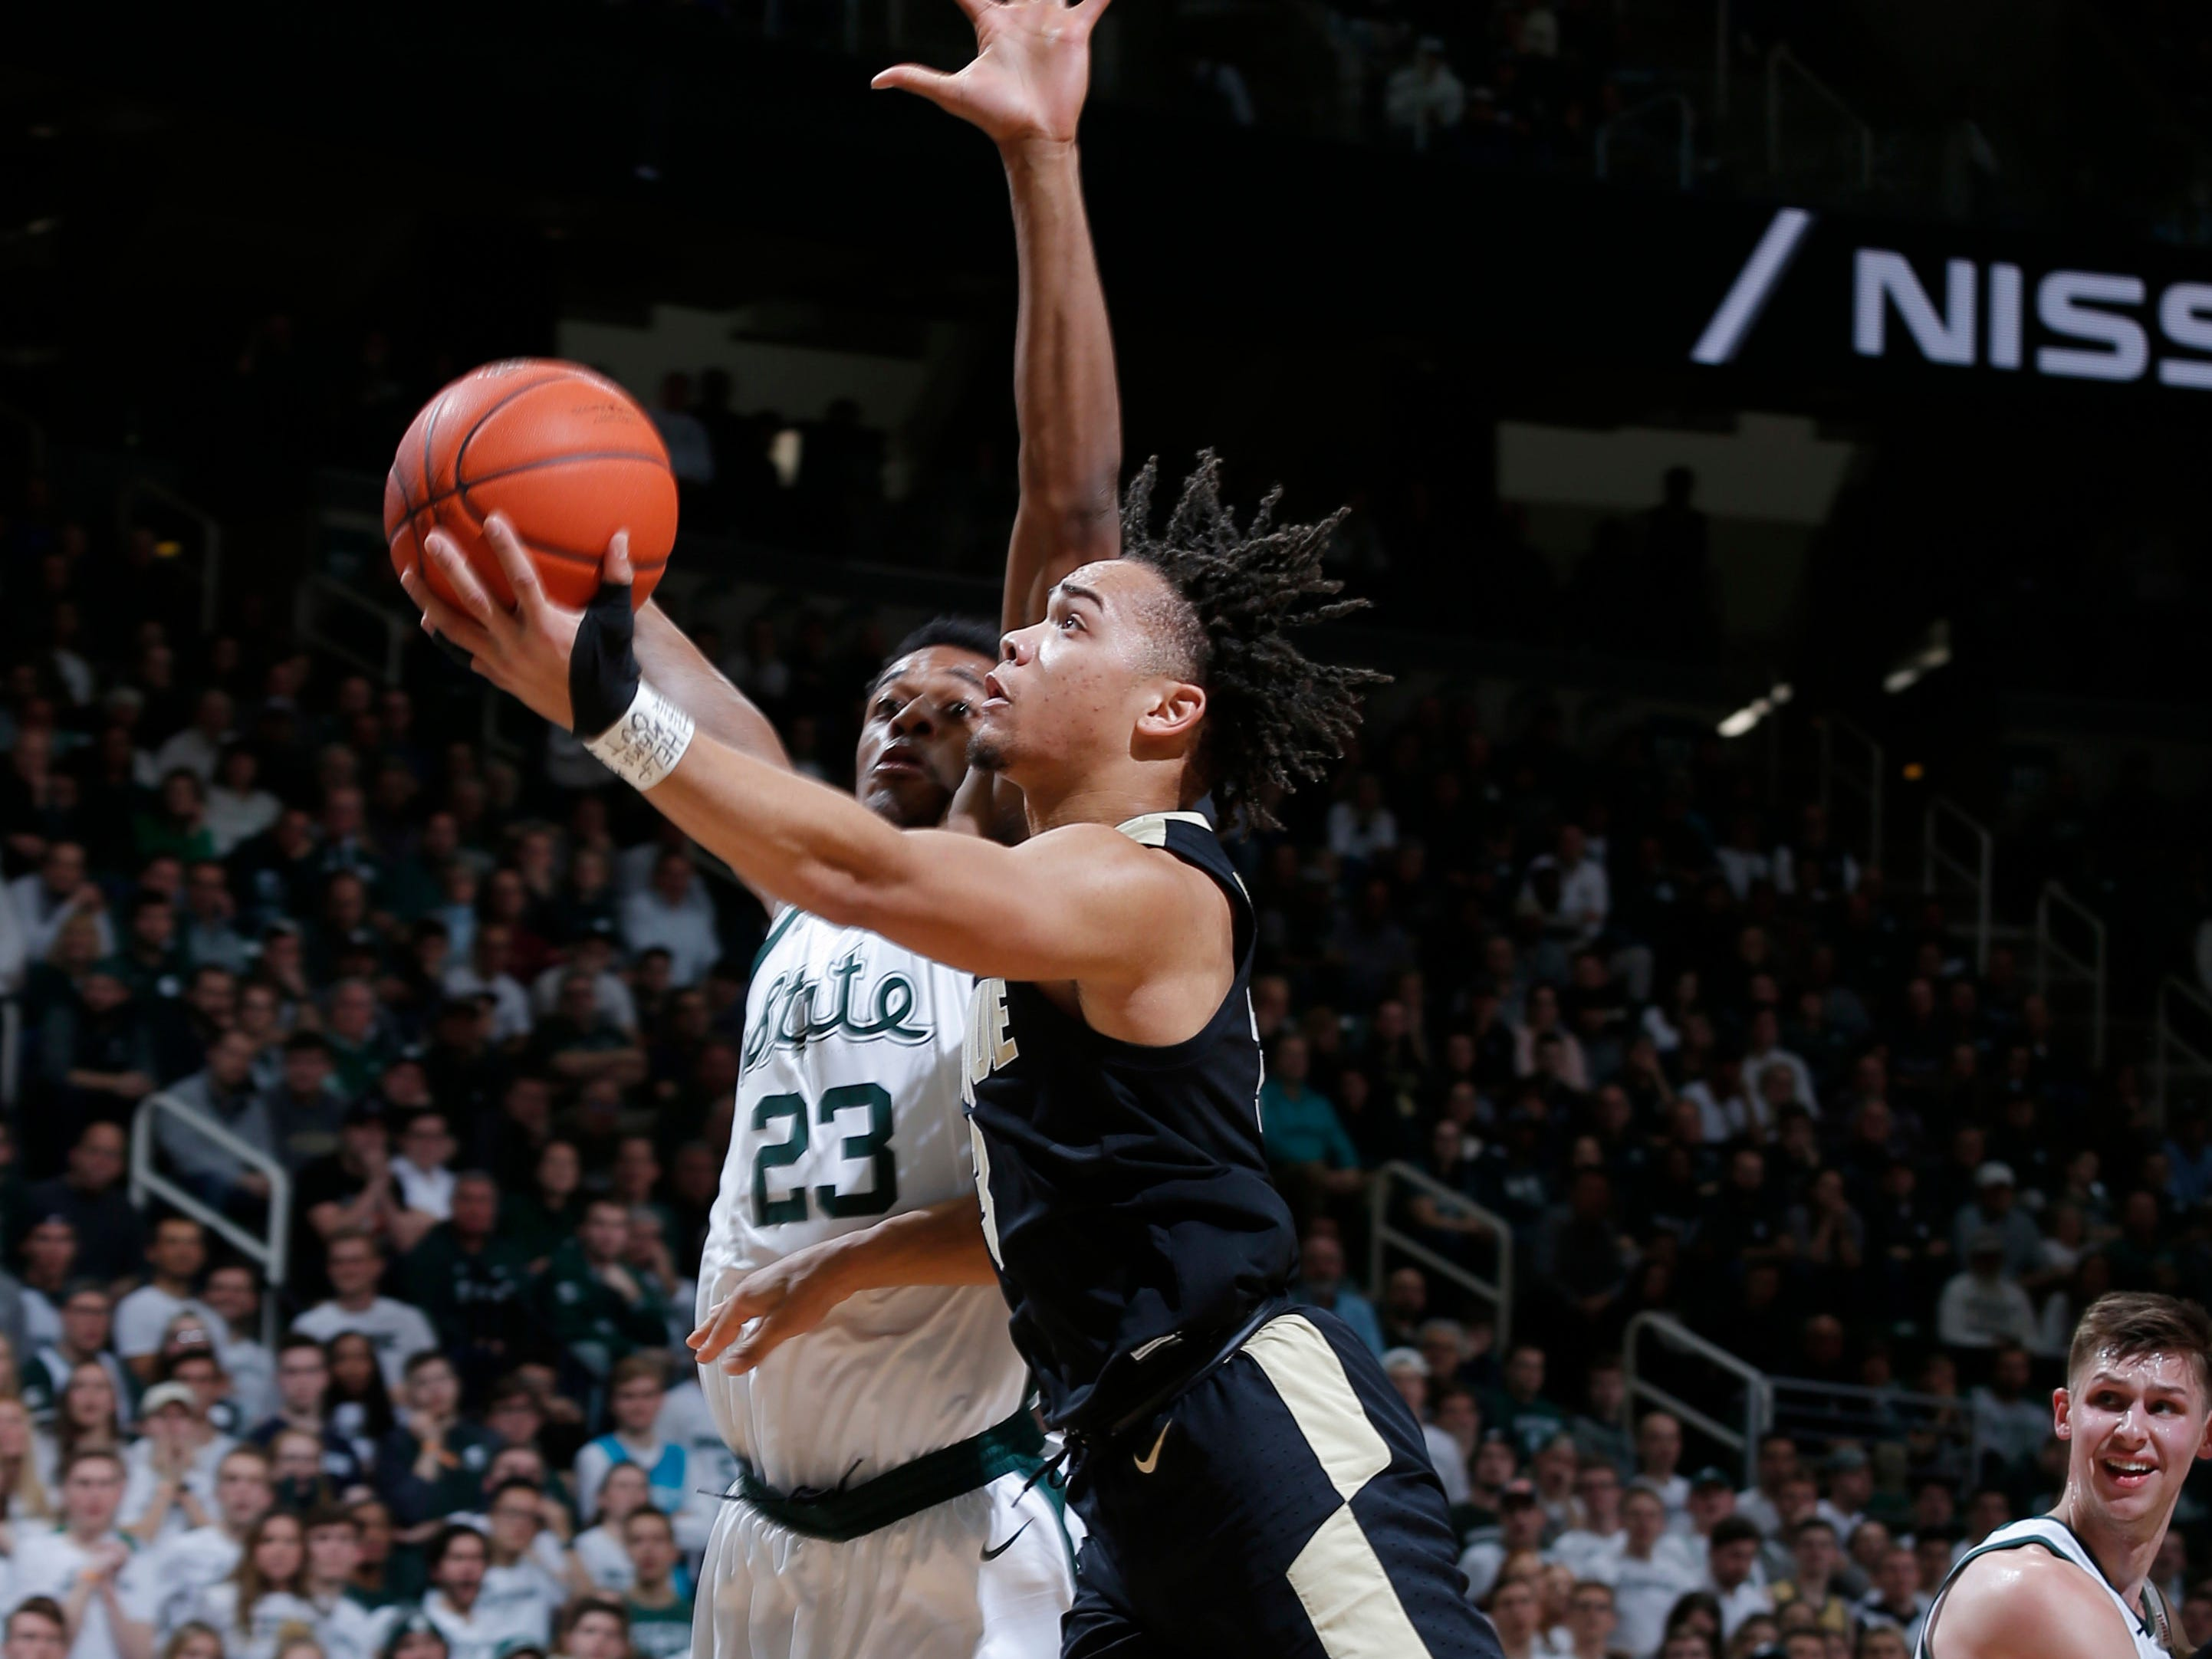 Purdue's Carsen Edwards, front, drives for a layup against Michigan State's Xavier Tillman (23) during the first half of an NCAA college basketball game, Tuesday, Jan. 8, 2019, in East Lansing, Mich.